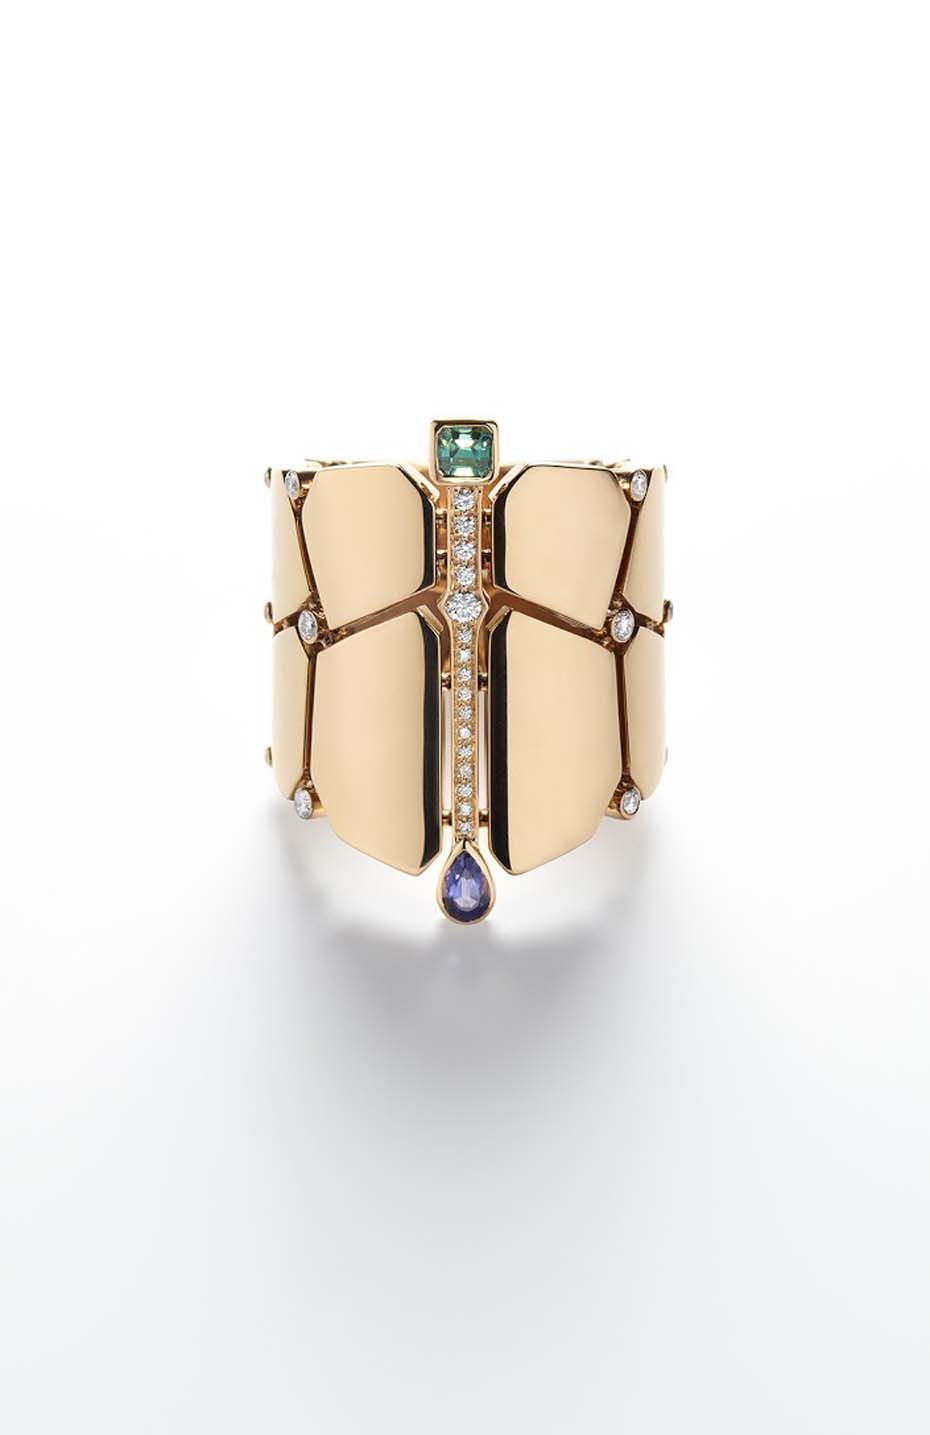 Hermès Niloticus rose gold cuff featuring a series of coloured stones including a pear-shaped iolite and a baguette-shaped beryl as well as brilliant-cut diamonds.